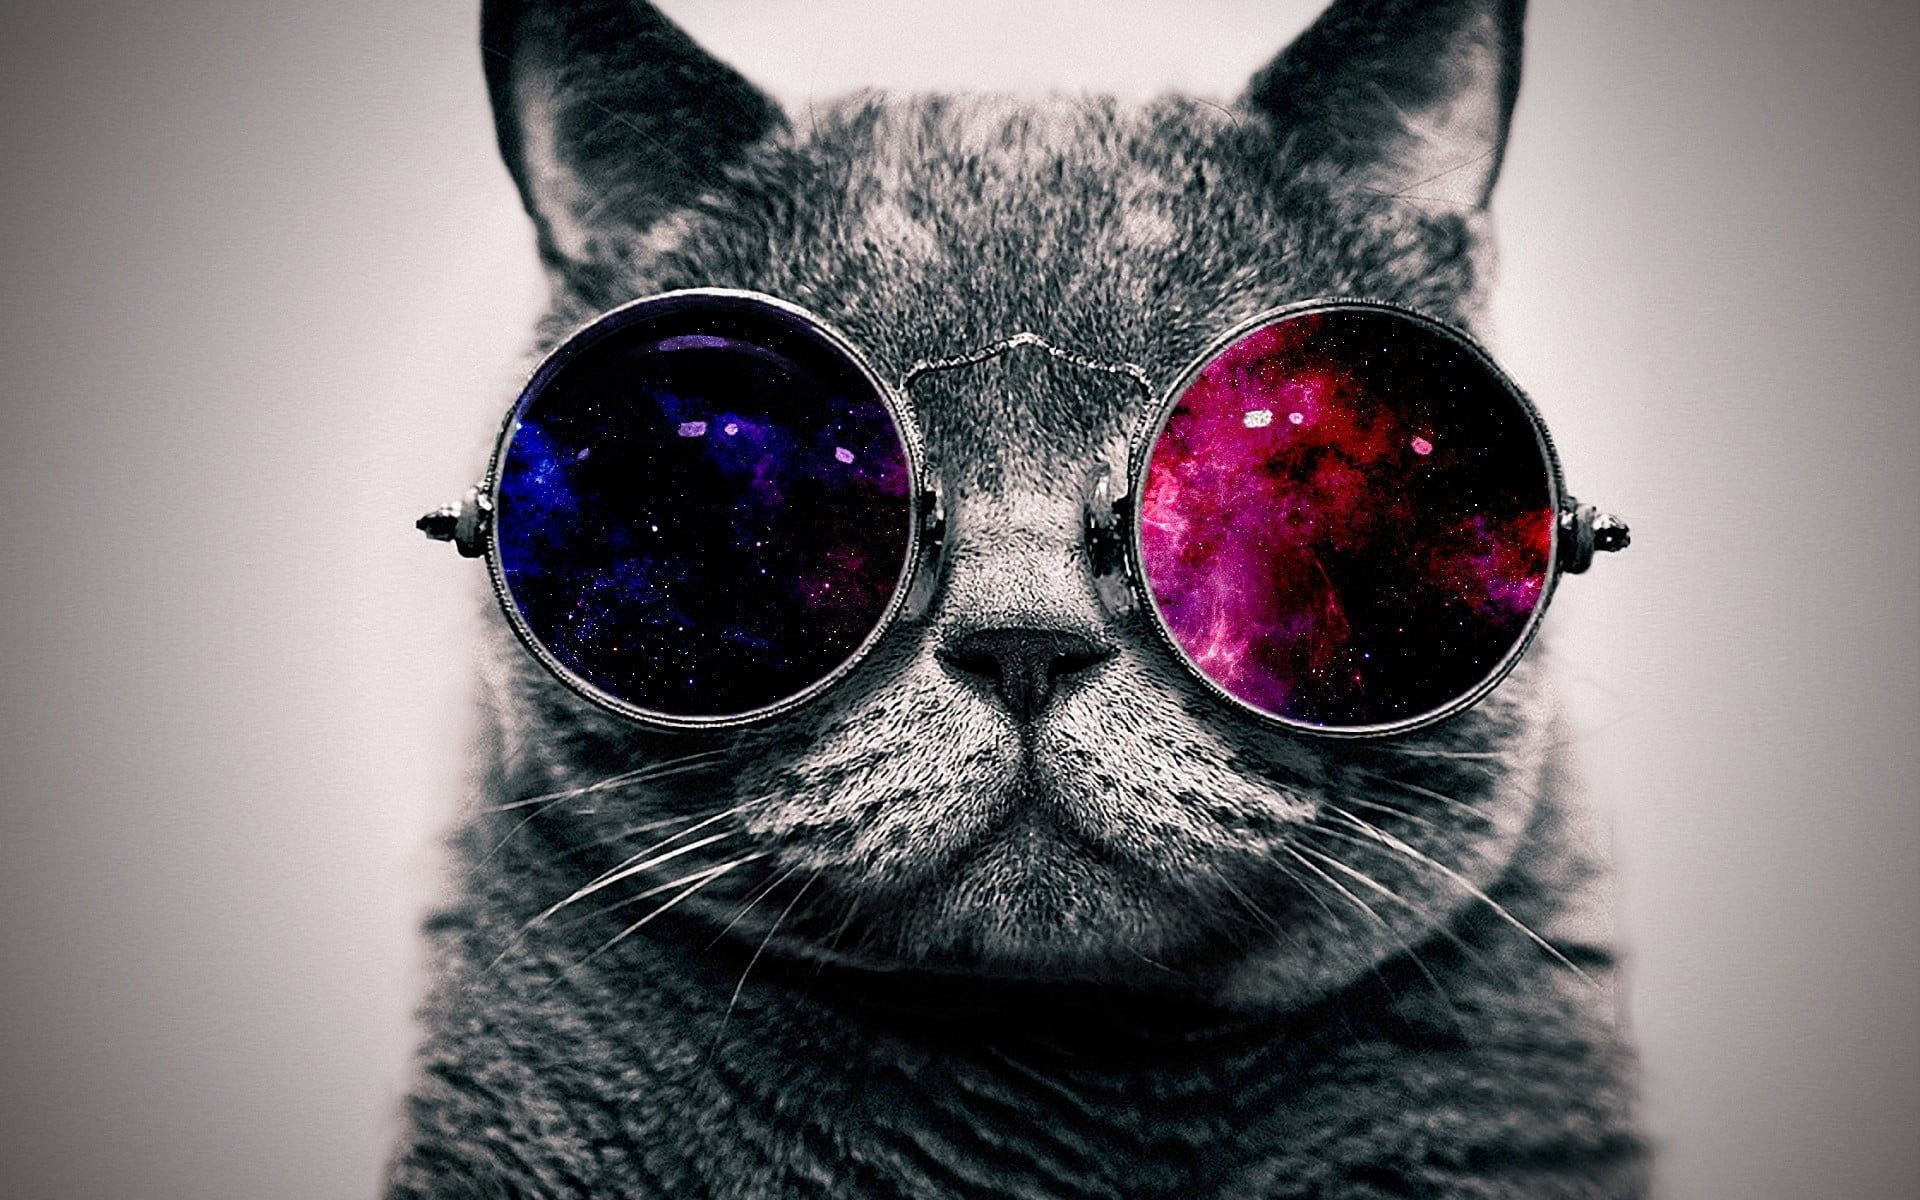 Grey Cat And Sunglasses Cat Glasses Space Abstract Minimalism Animals Digital Art Selective Coloring S Cat Posters Cool Wallpapers Cats Glasses Wallpaper